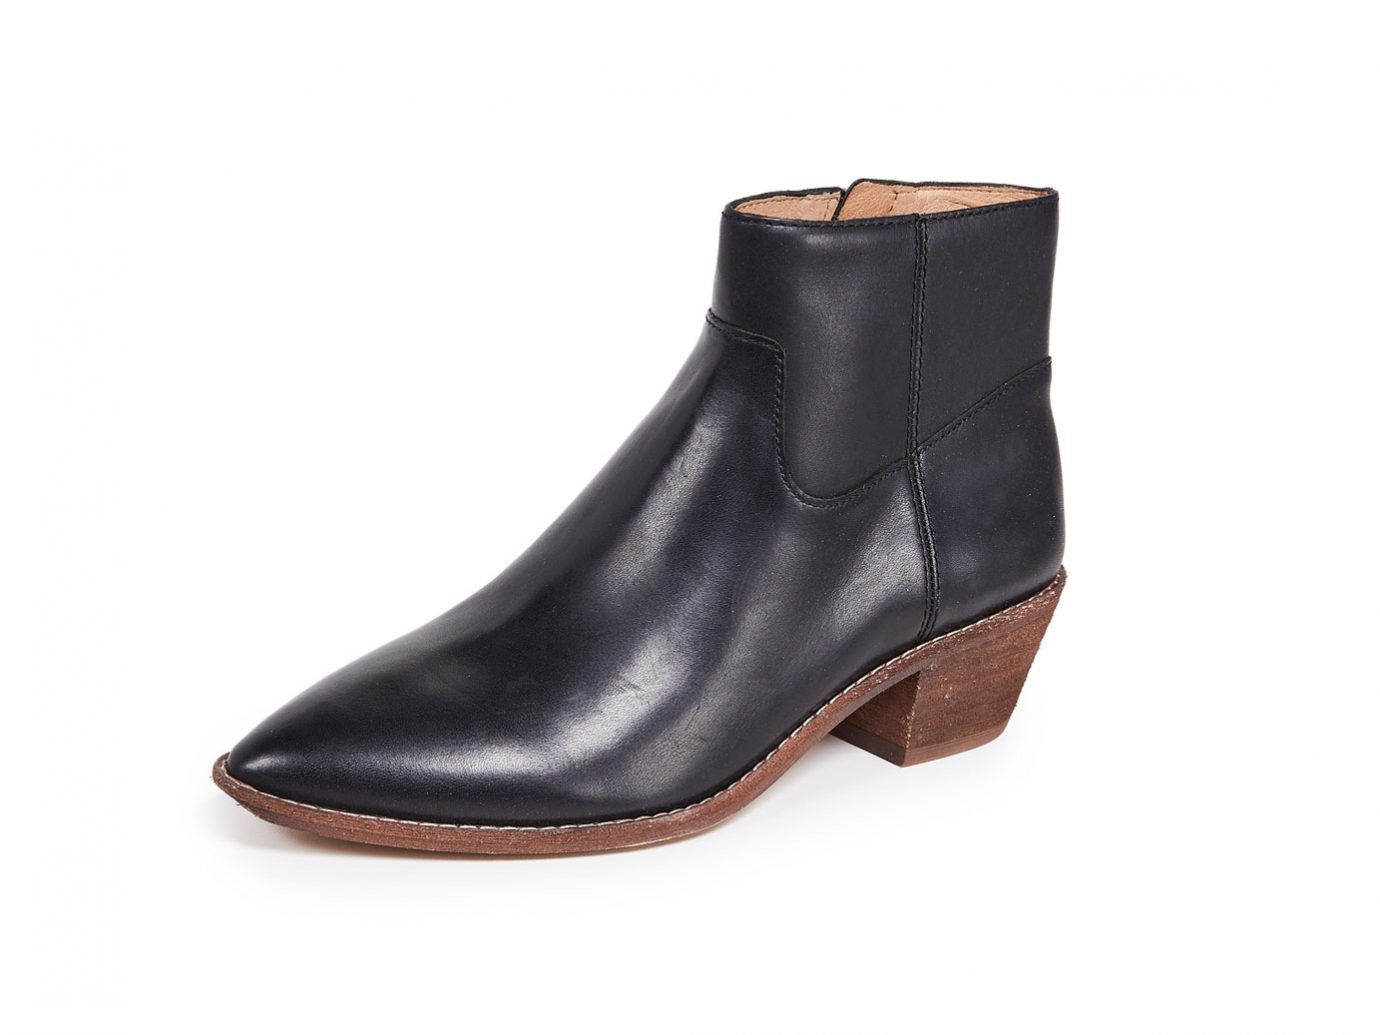 Madewell Charley Boots